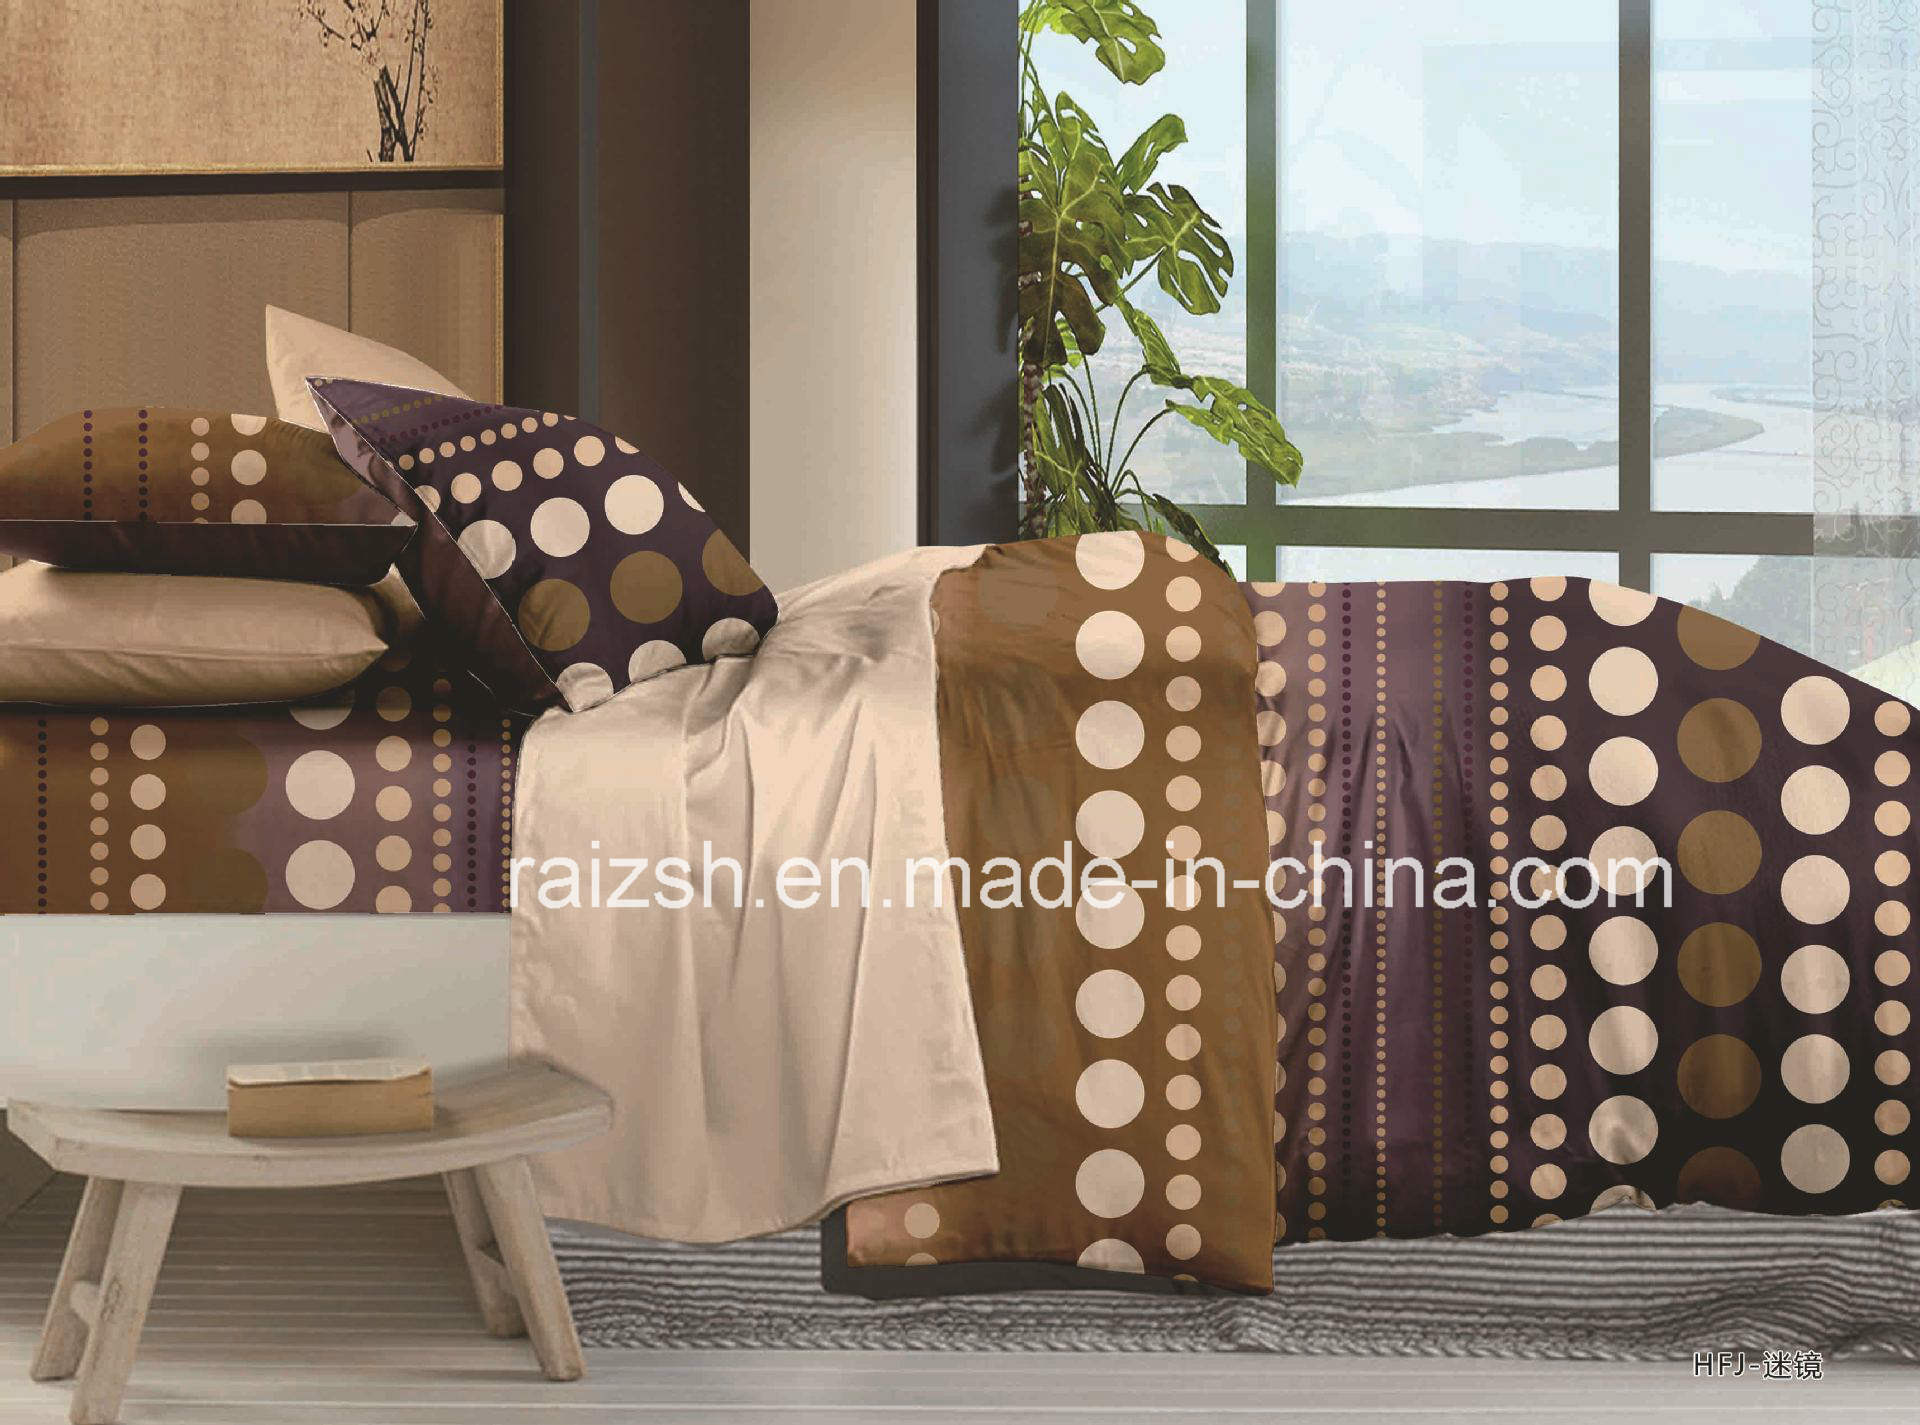 Polyester Reactive Dyeing for 4 PCS Bedding Sets